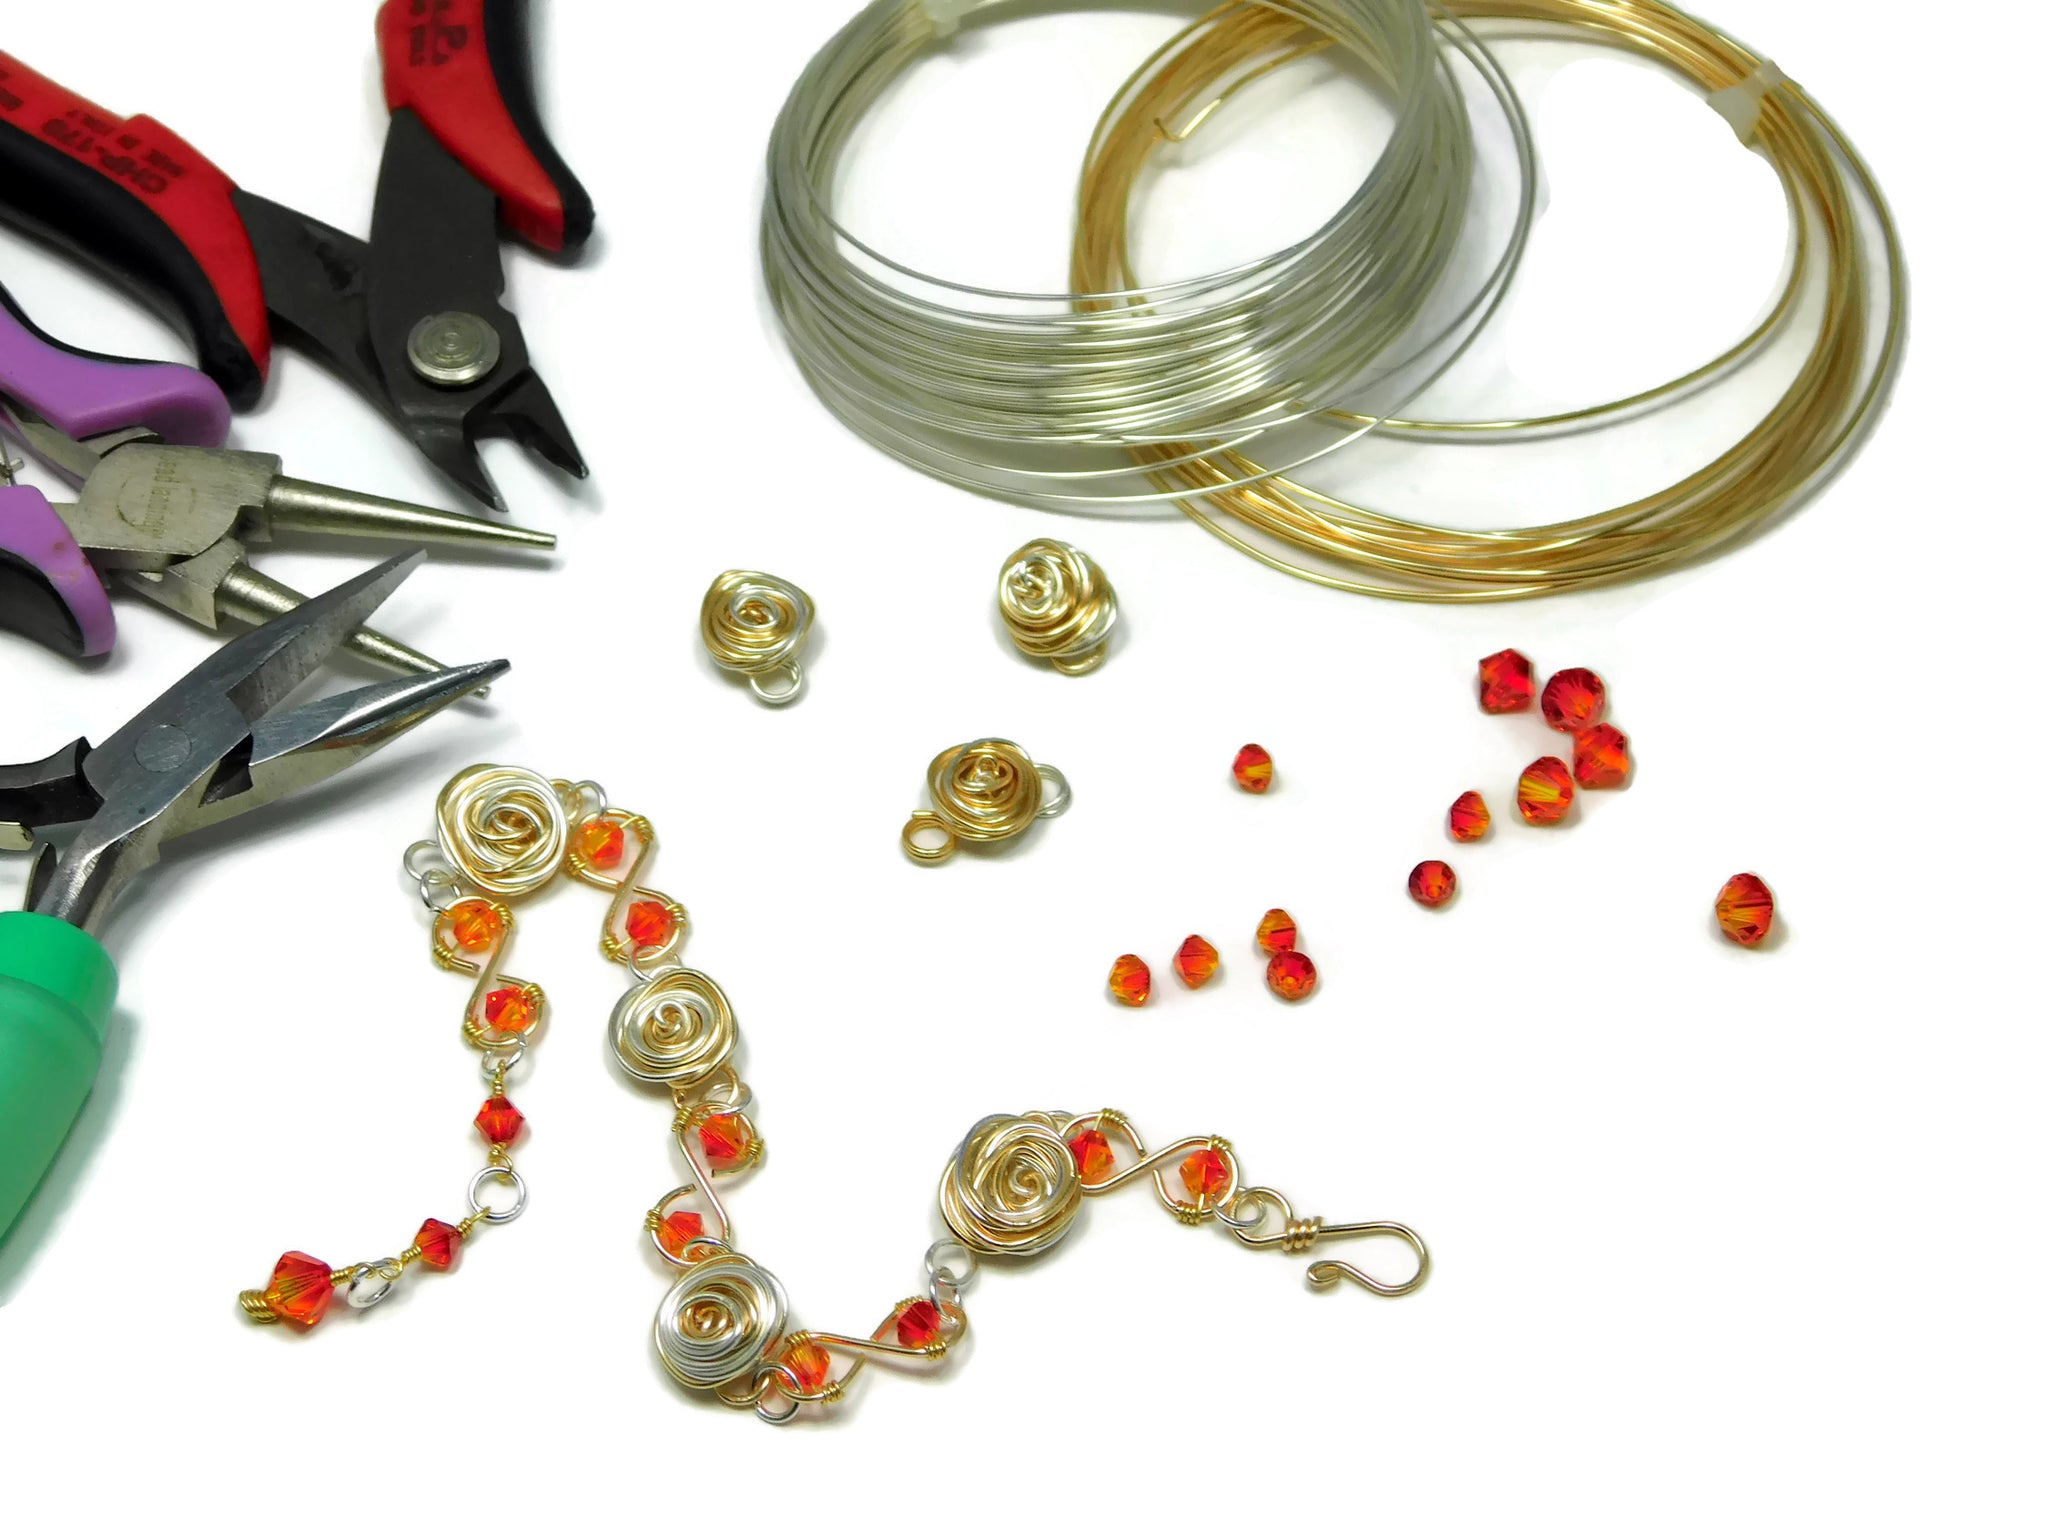 Wire Wrapping Tools - The Bare Essentials for the Beginner Wire Wrapper and How to Use Household Items for Wire Wrapping